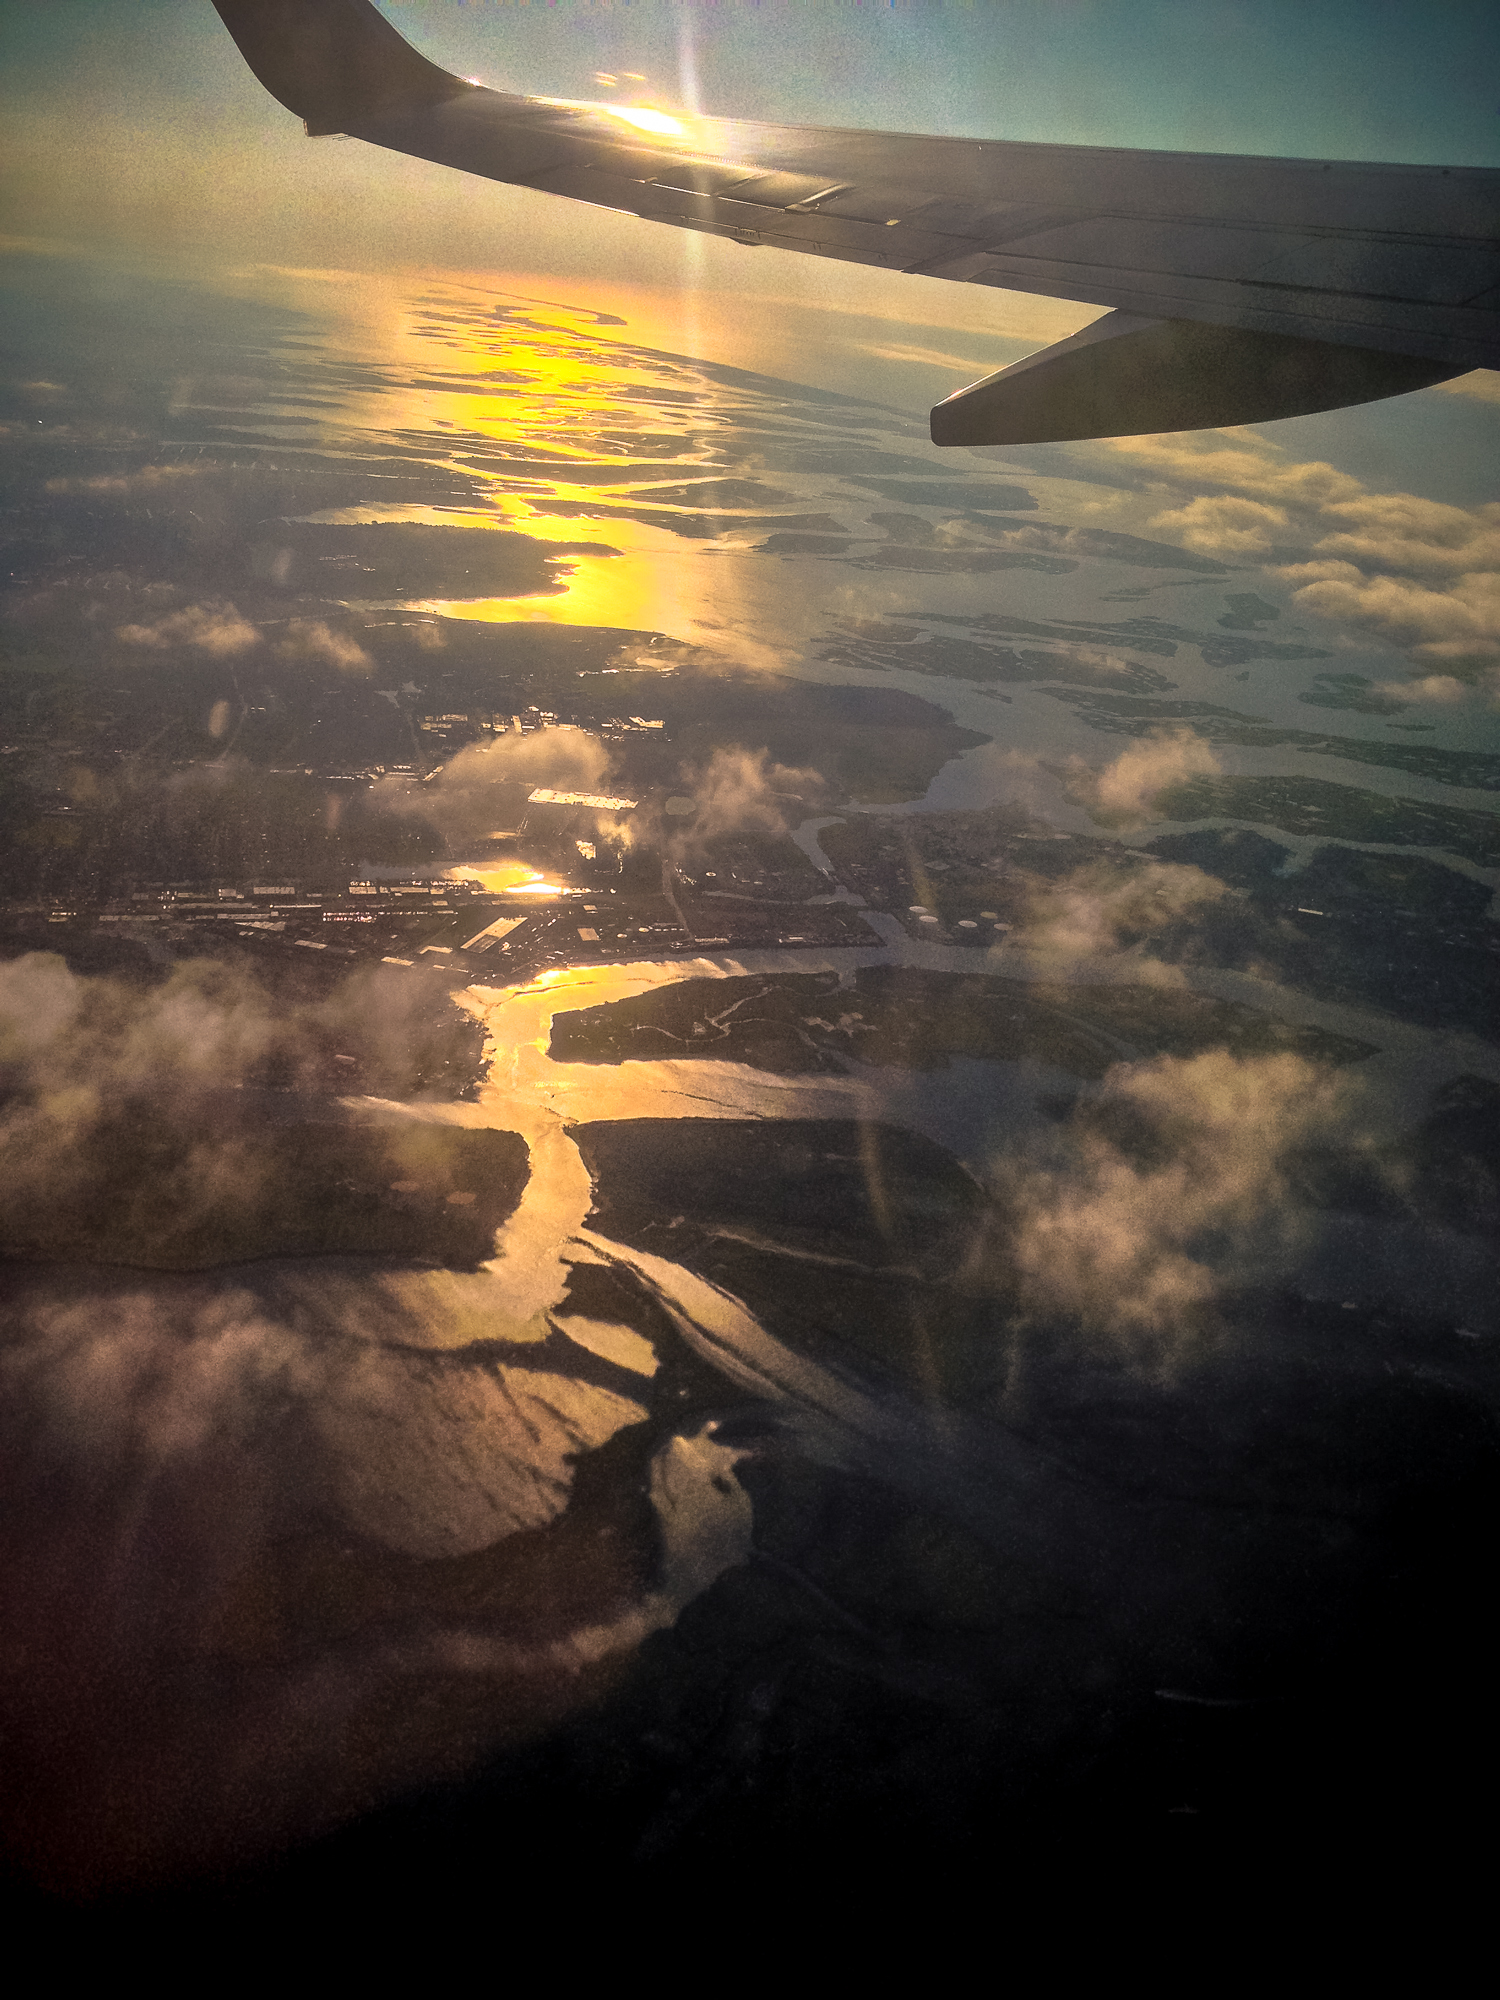 Long Island after takeoff from JFK